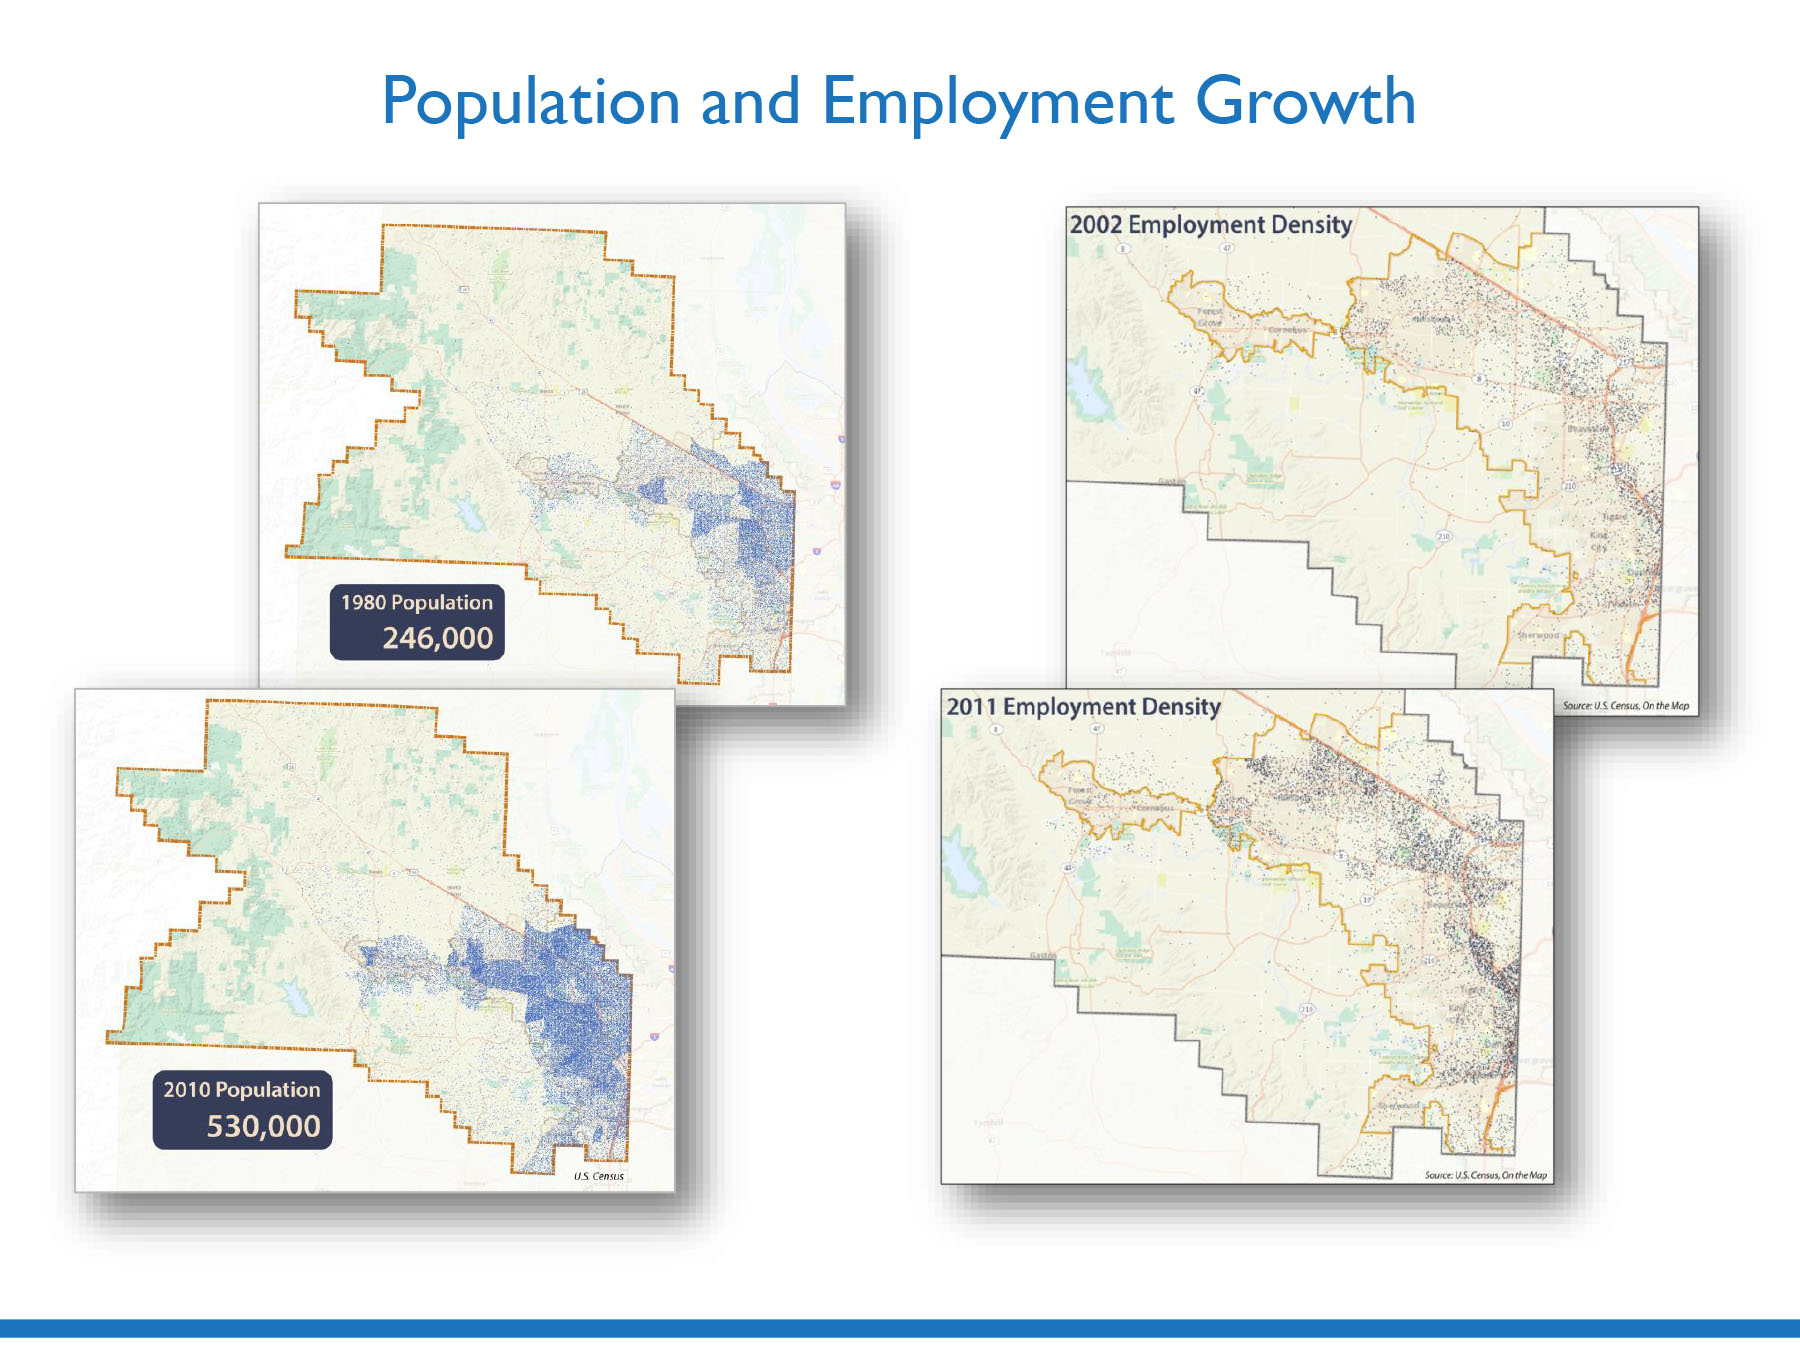 population and employment growth the county exceeded growth projections in